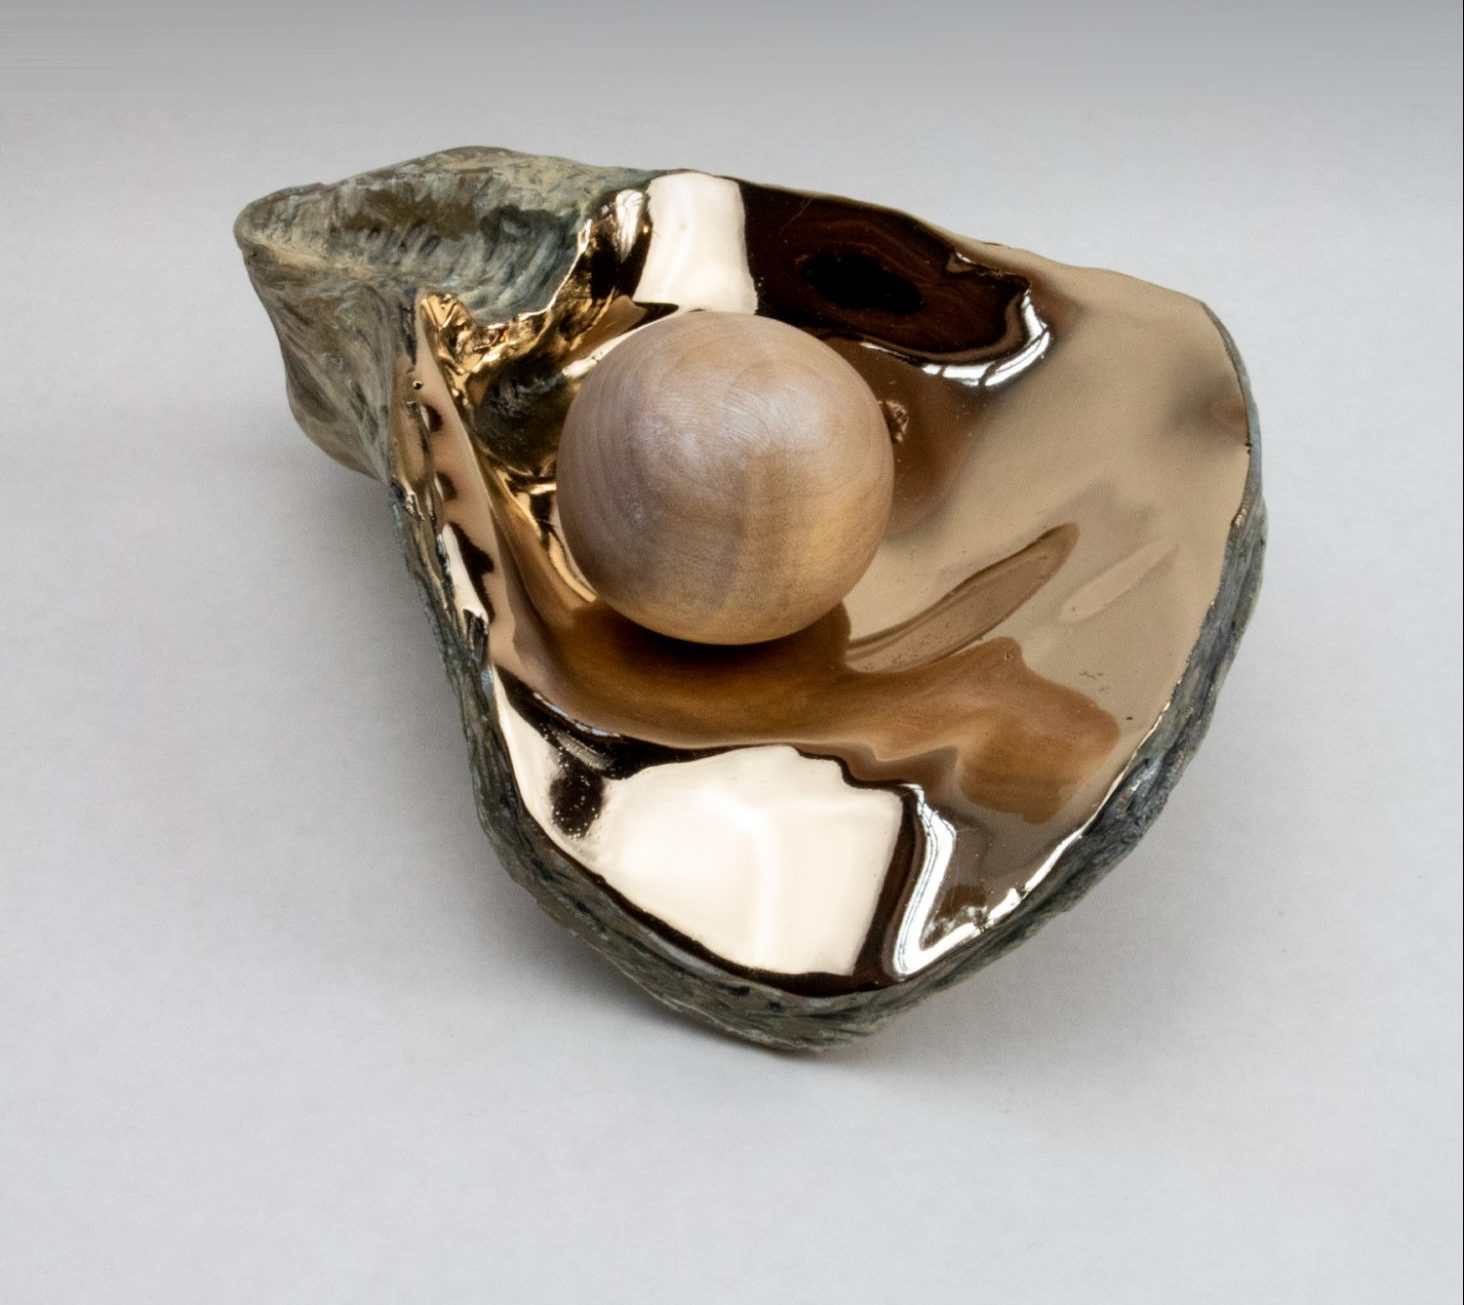 Andrew Vallees Show work  Bronze Oyster e